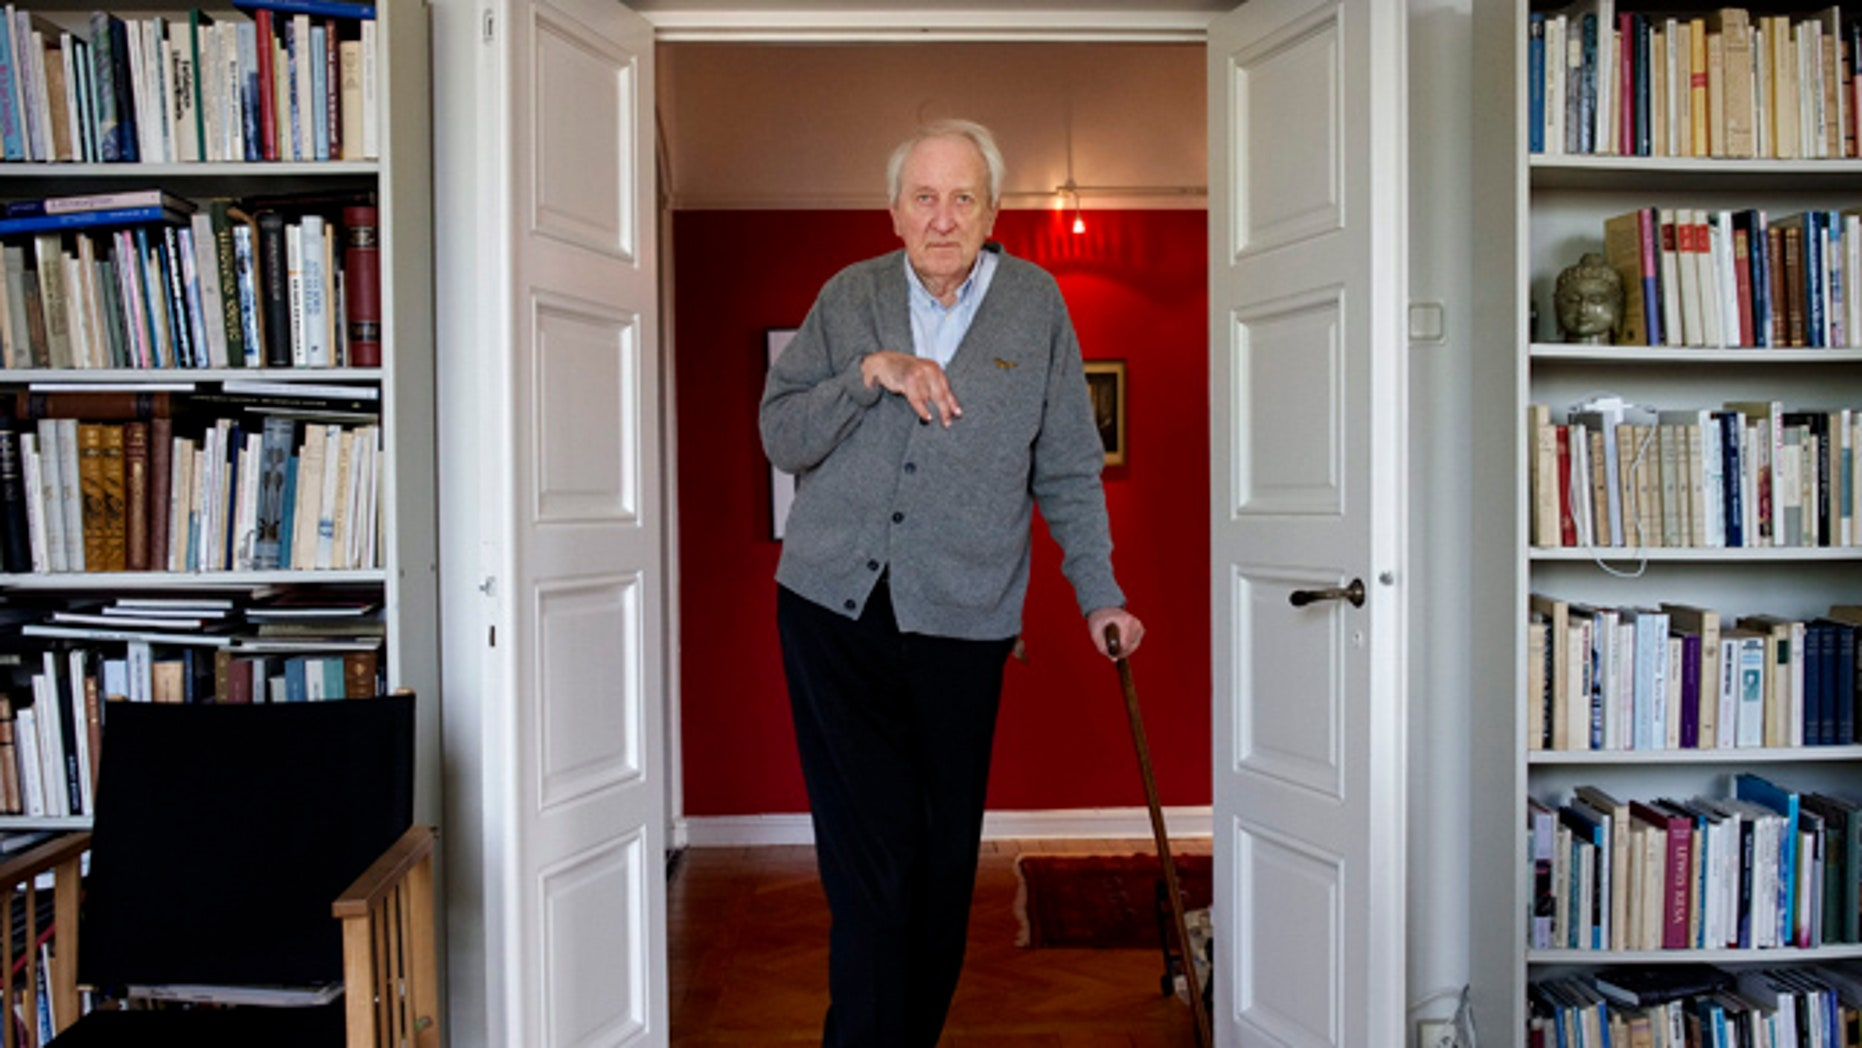 FILE 2011: Tomas Transtromer at his home in Stockholm, Sweden.